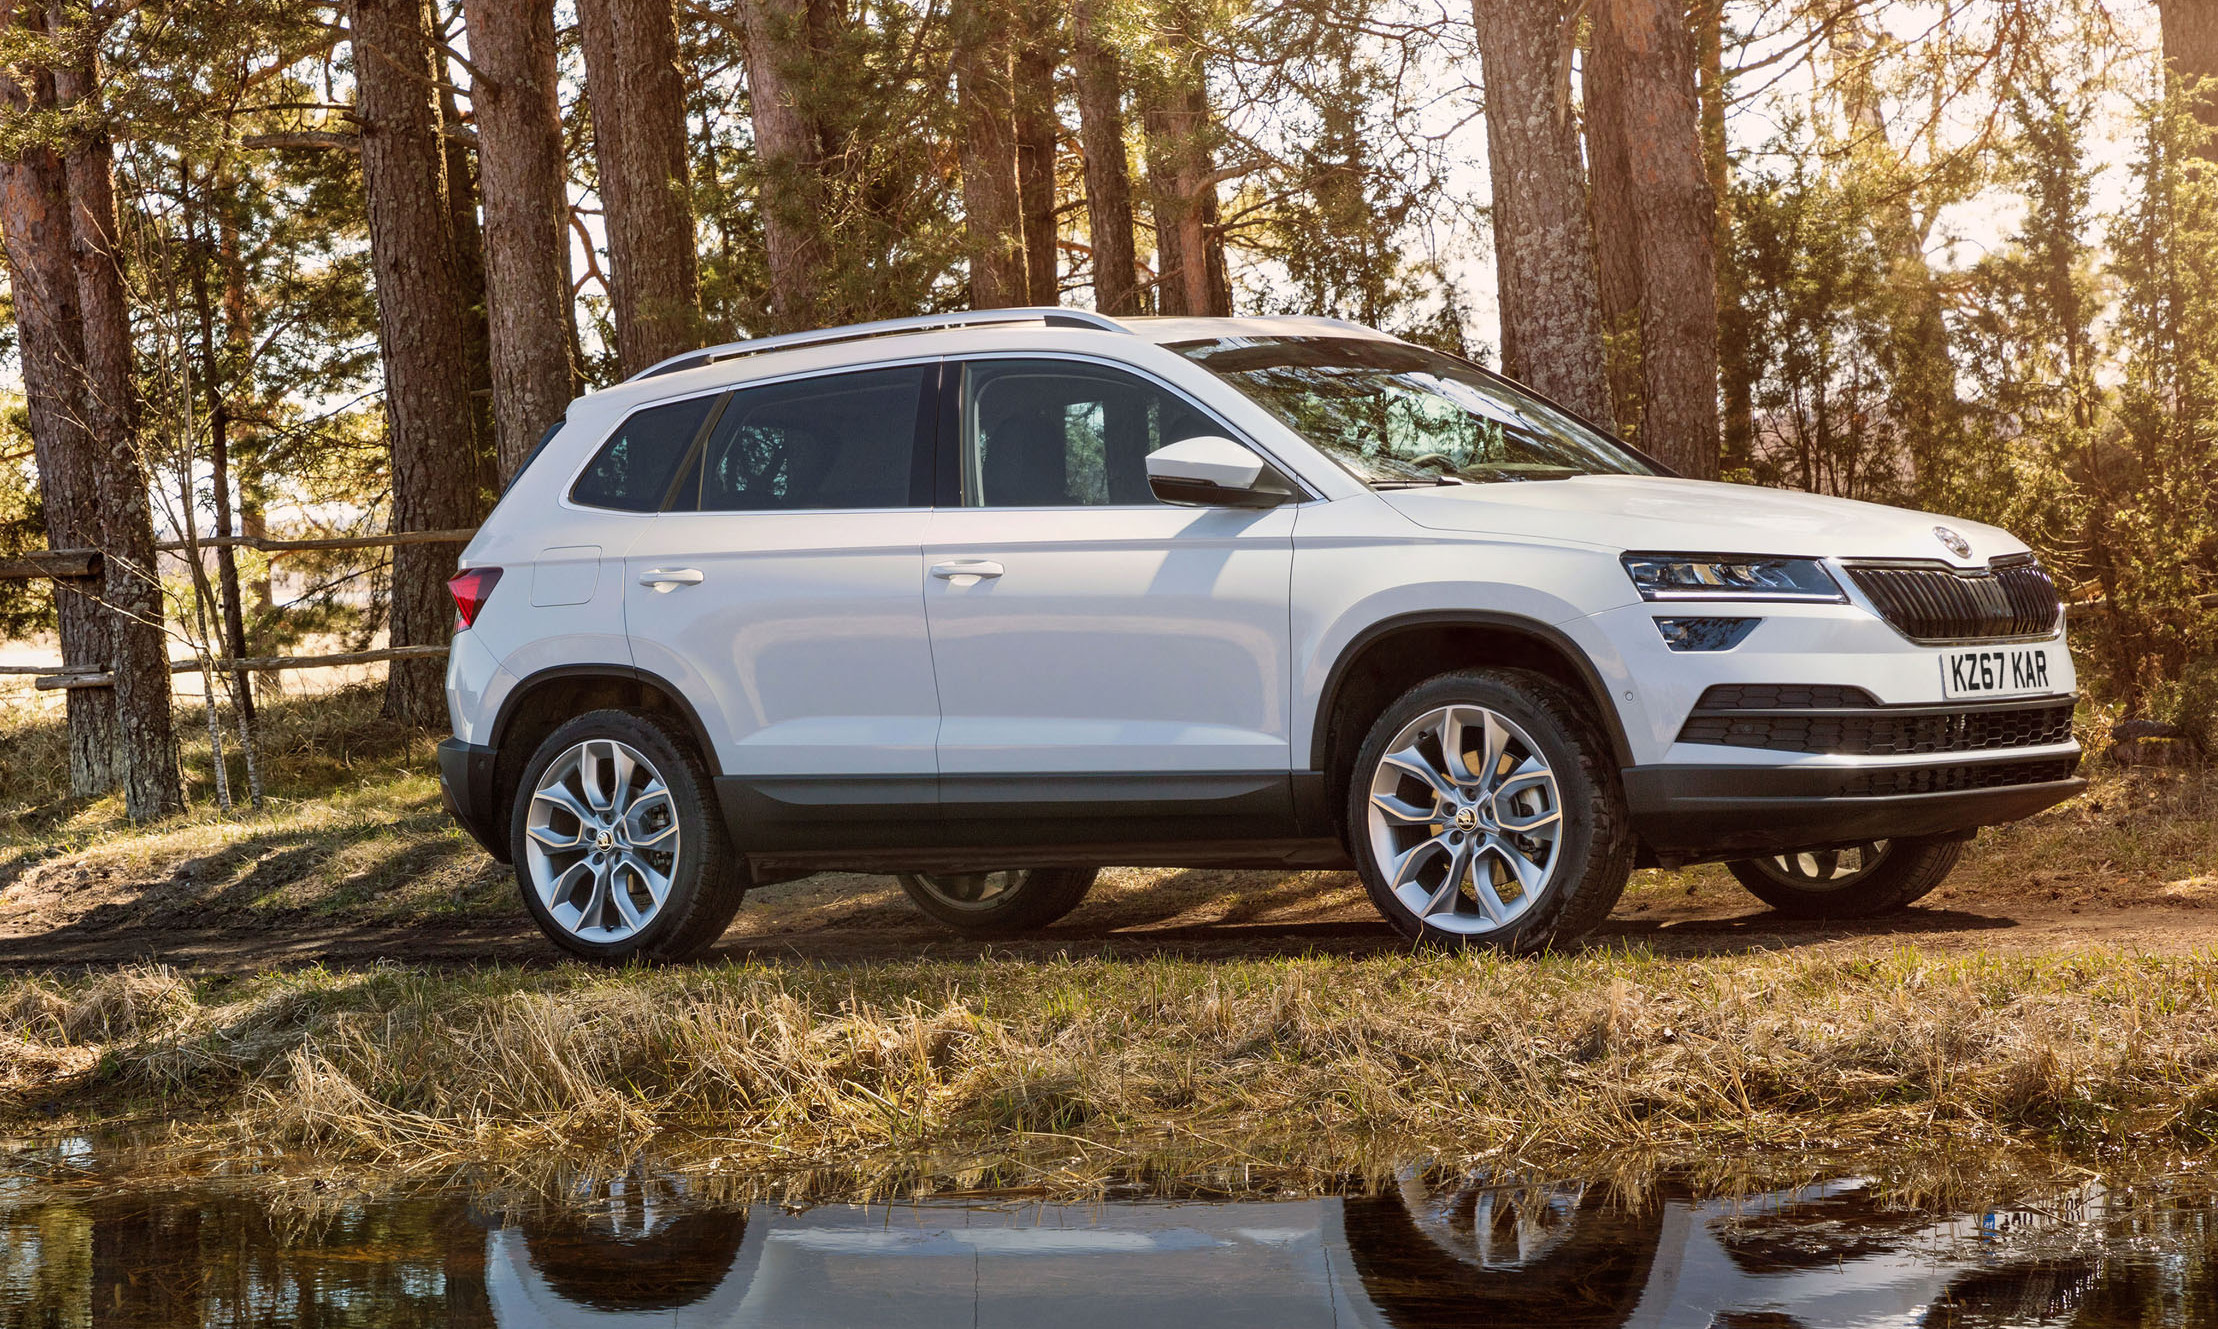 The Skoda Karoq is an SUV crossover with so much to offer